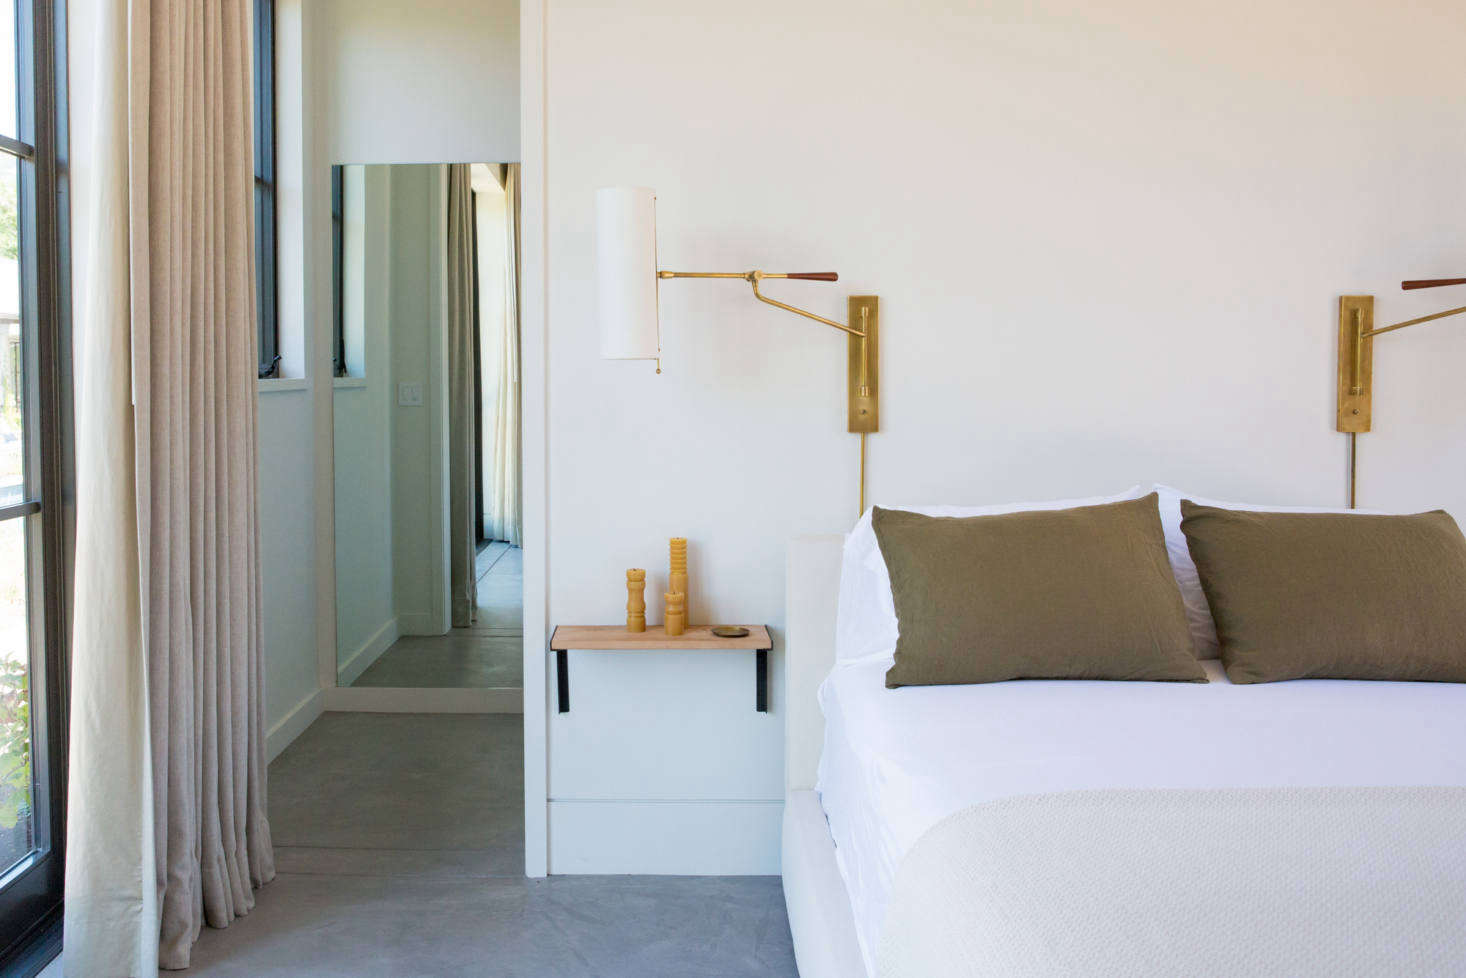 A guest bedroom, with olive-colored pillows found at Napa Valley Vintage Home and a pair of Frankfort Articulating Wall Sconces.